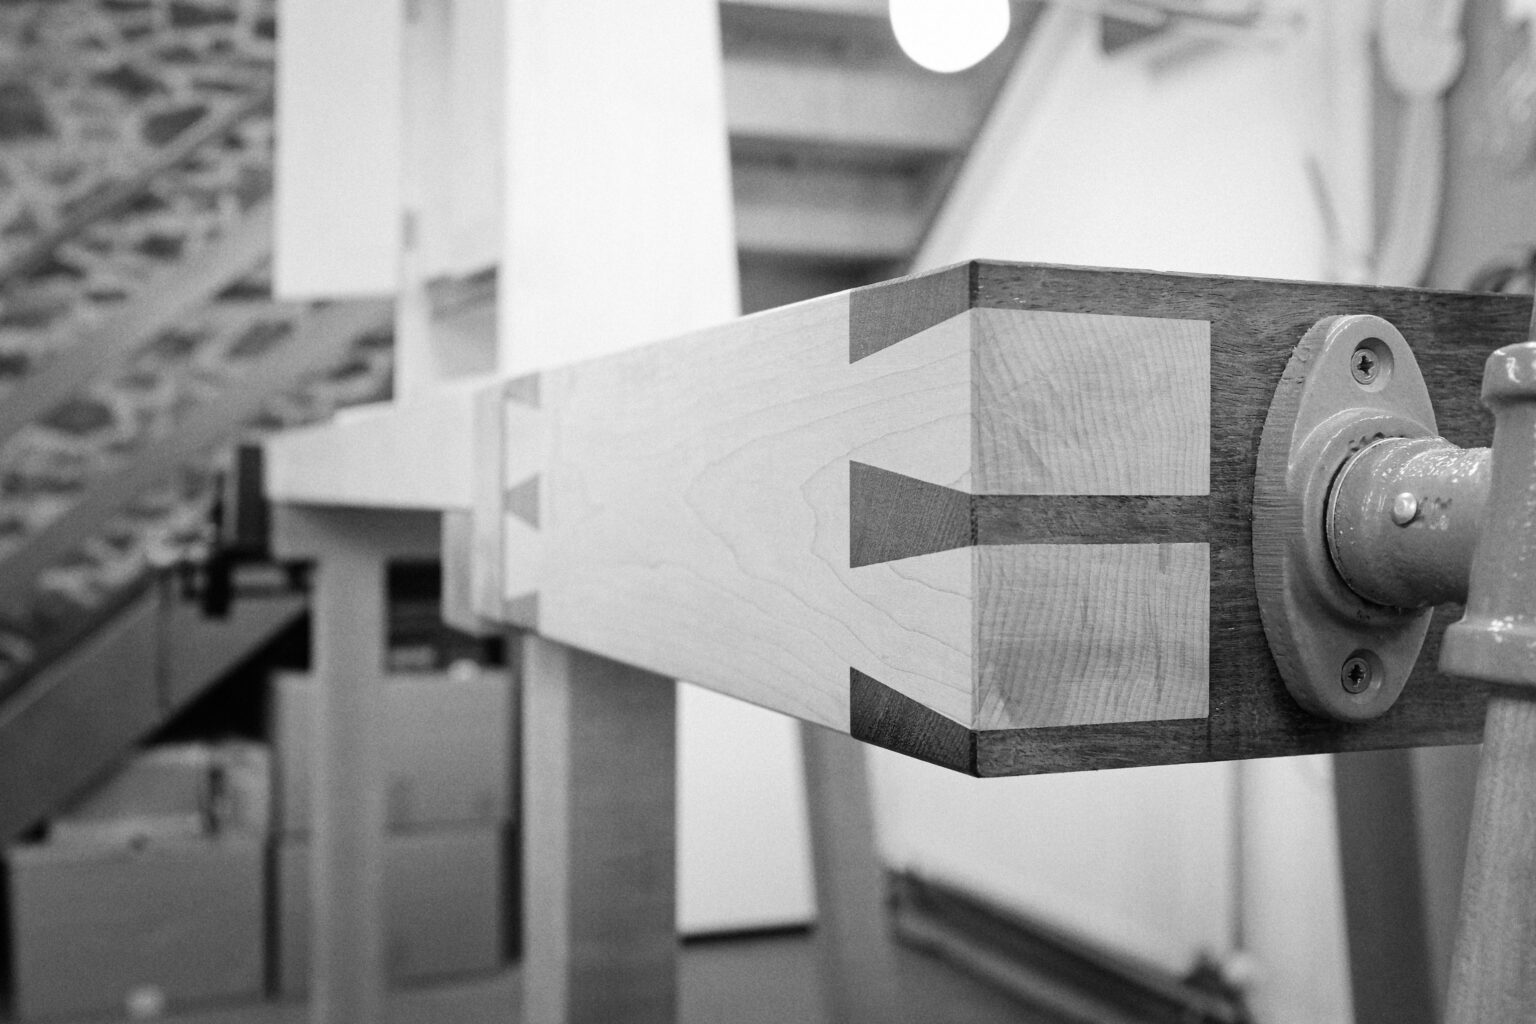 A CLOSEUP OF THE TAILVICE ON A CUSTOM ROWDEN ATELIER WORKBENCH, MADE IN THE FURNITURE MAKING CURRICULUM ON OUR WOODWORKING COURSES